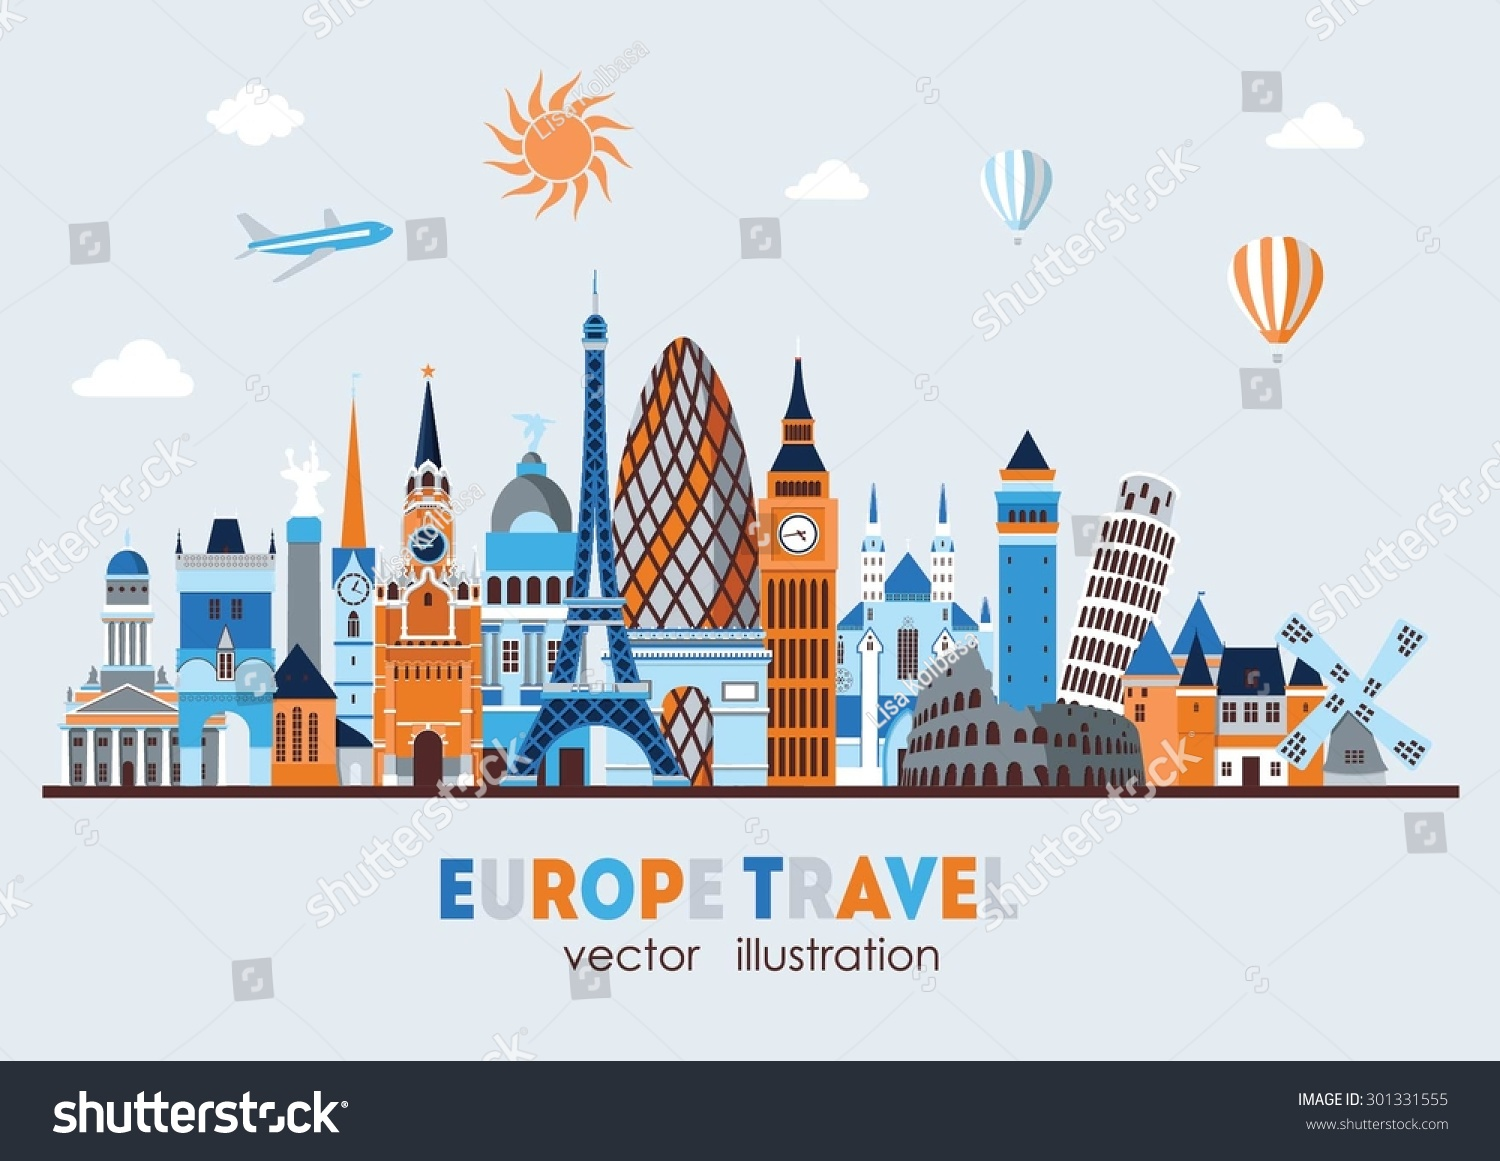 vector illustration of europe - photo #14